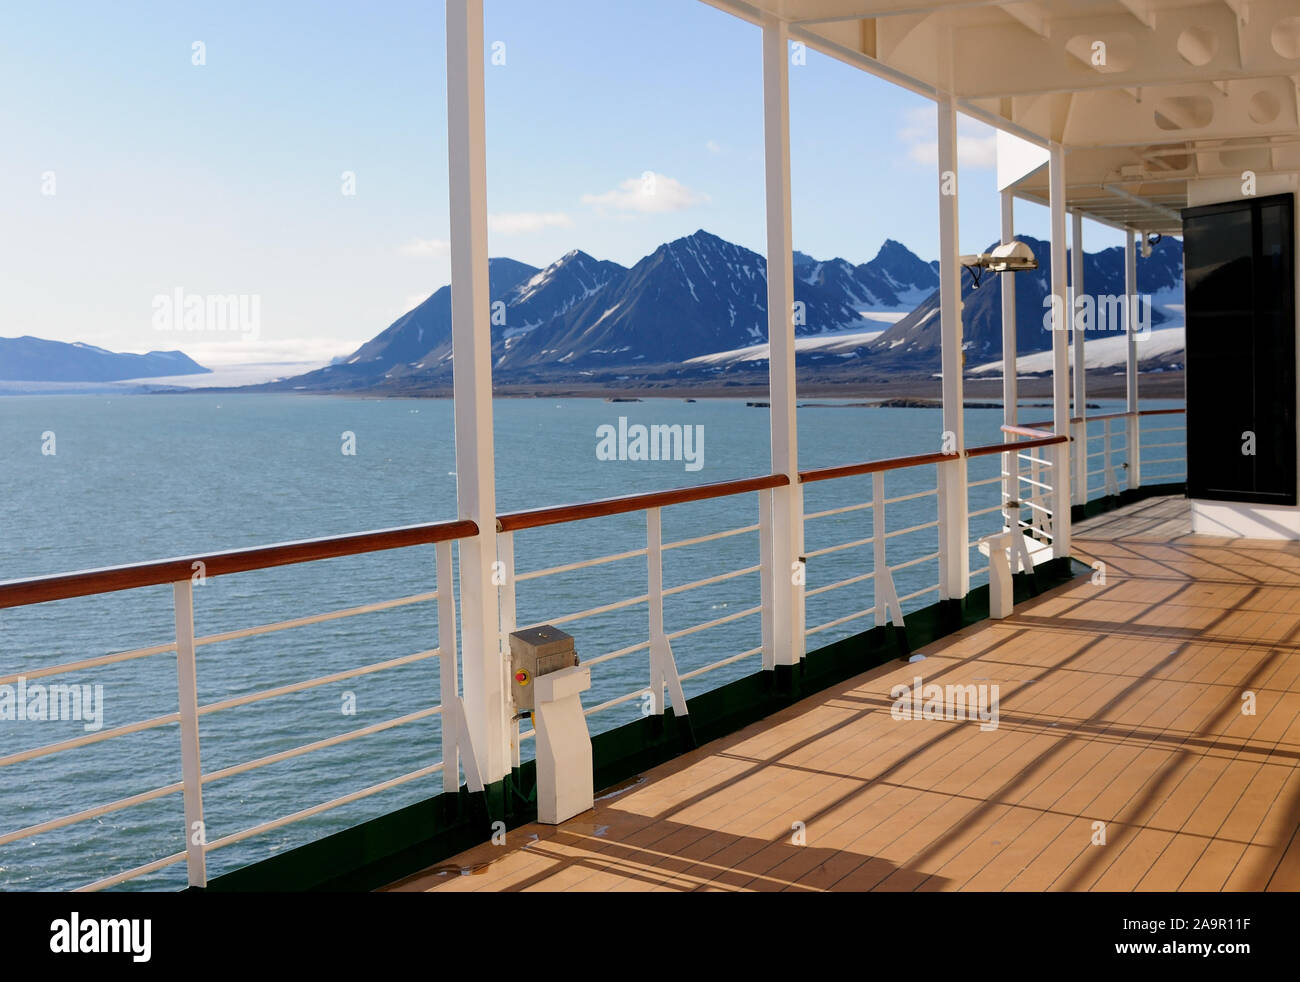 The promenade deck of a cruise ship anchored in the Kongsfjorden off Ny Alesund on the island of Spitsbergen. Stock Photo